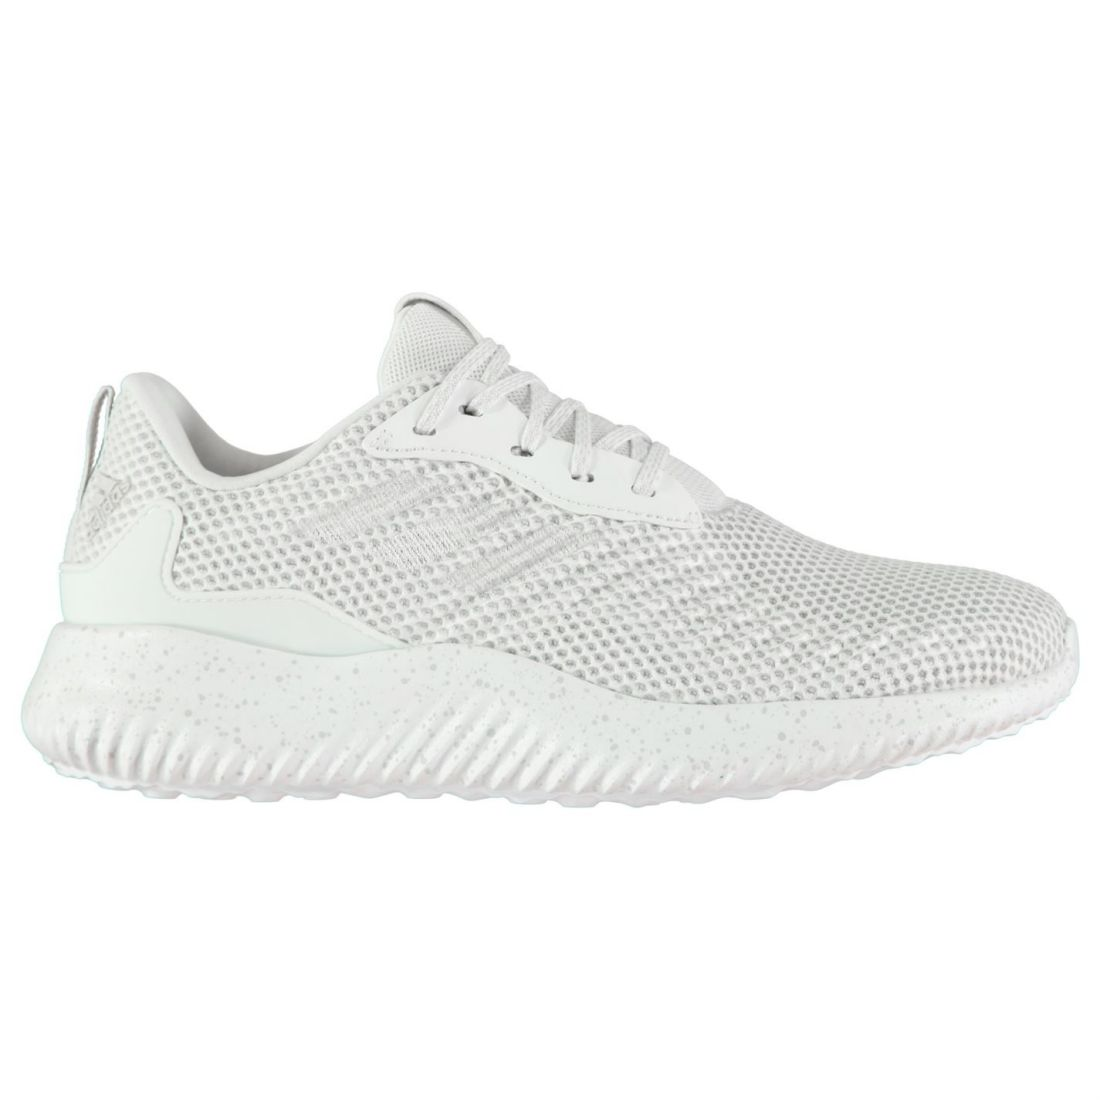 Adidas Alphabounce Running shoes Mens Gents Road